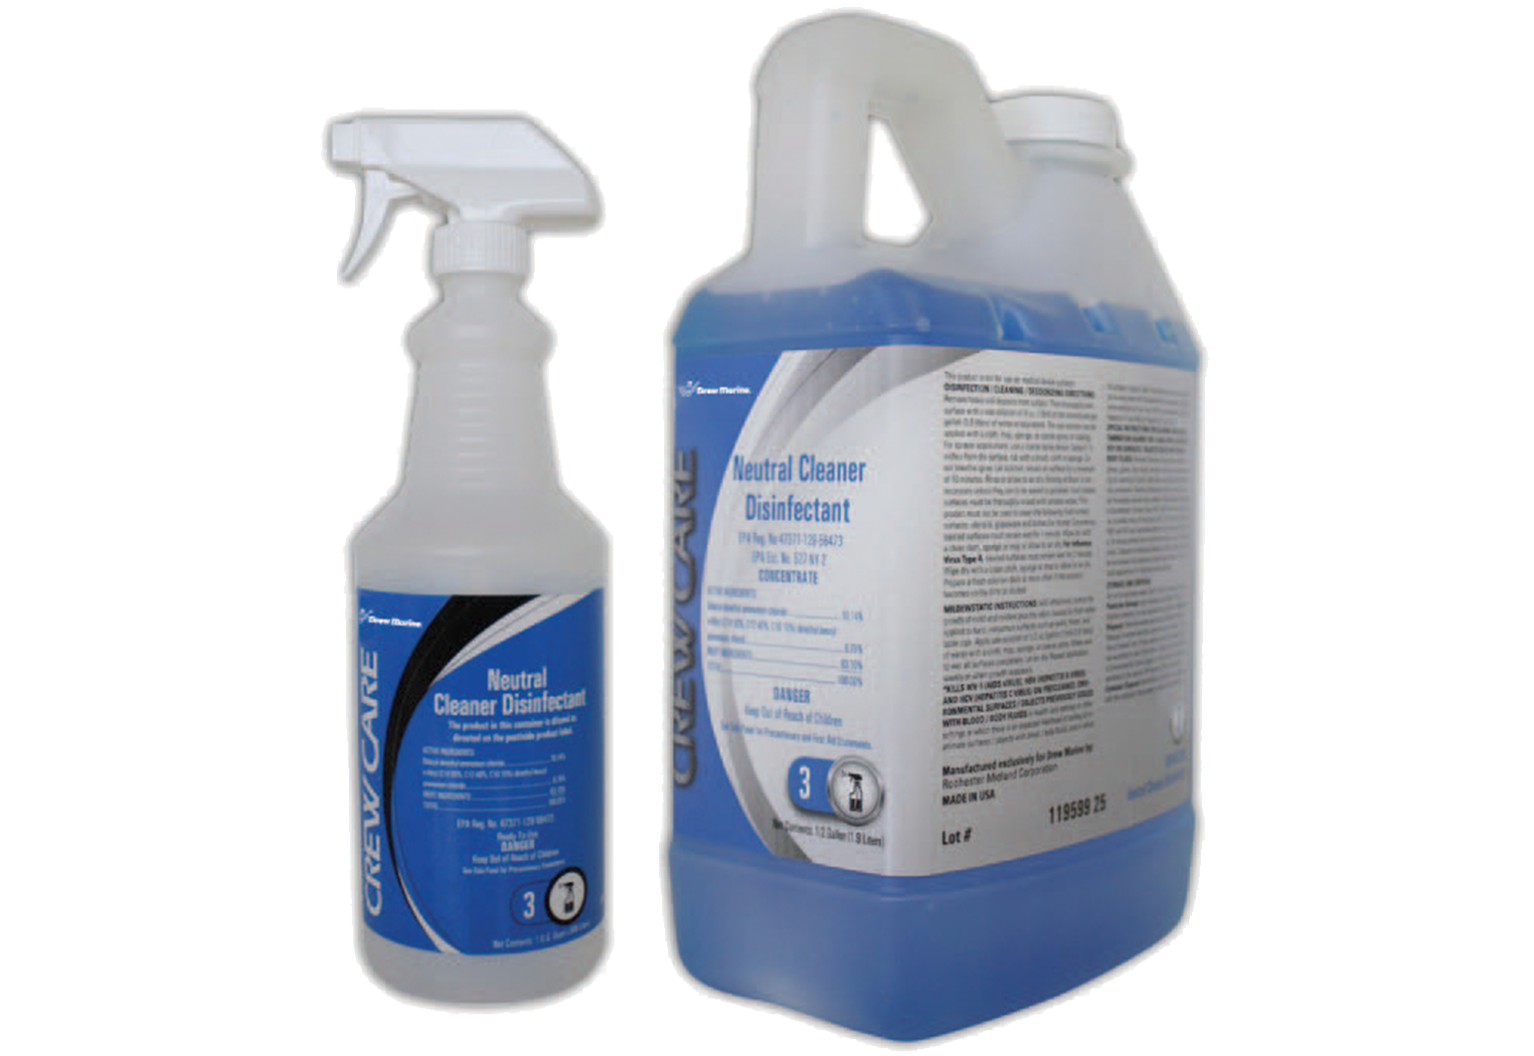 Neutral Cleaner Disinfectant.png